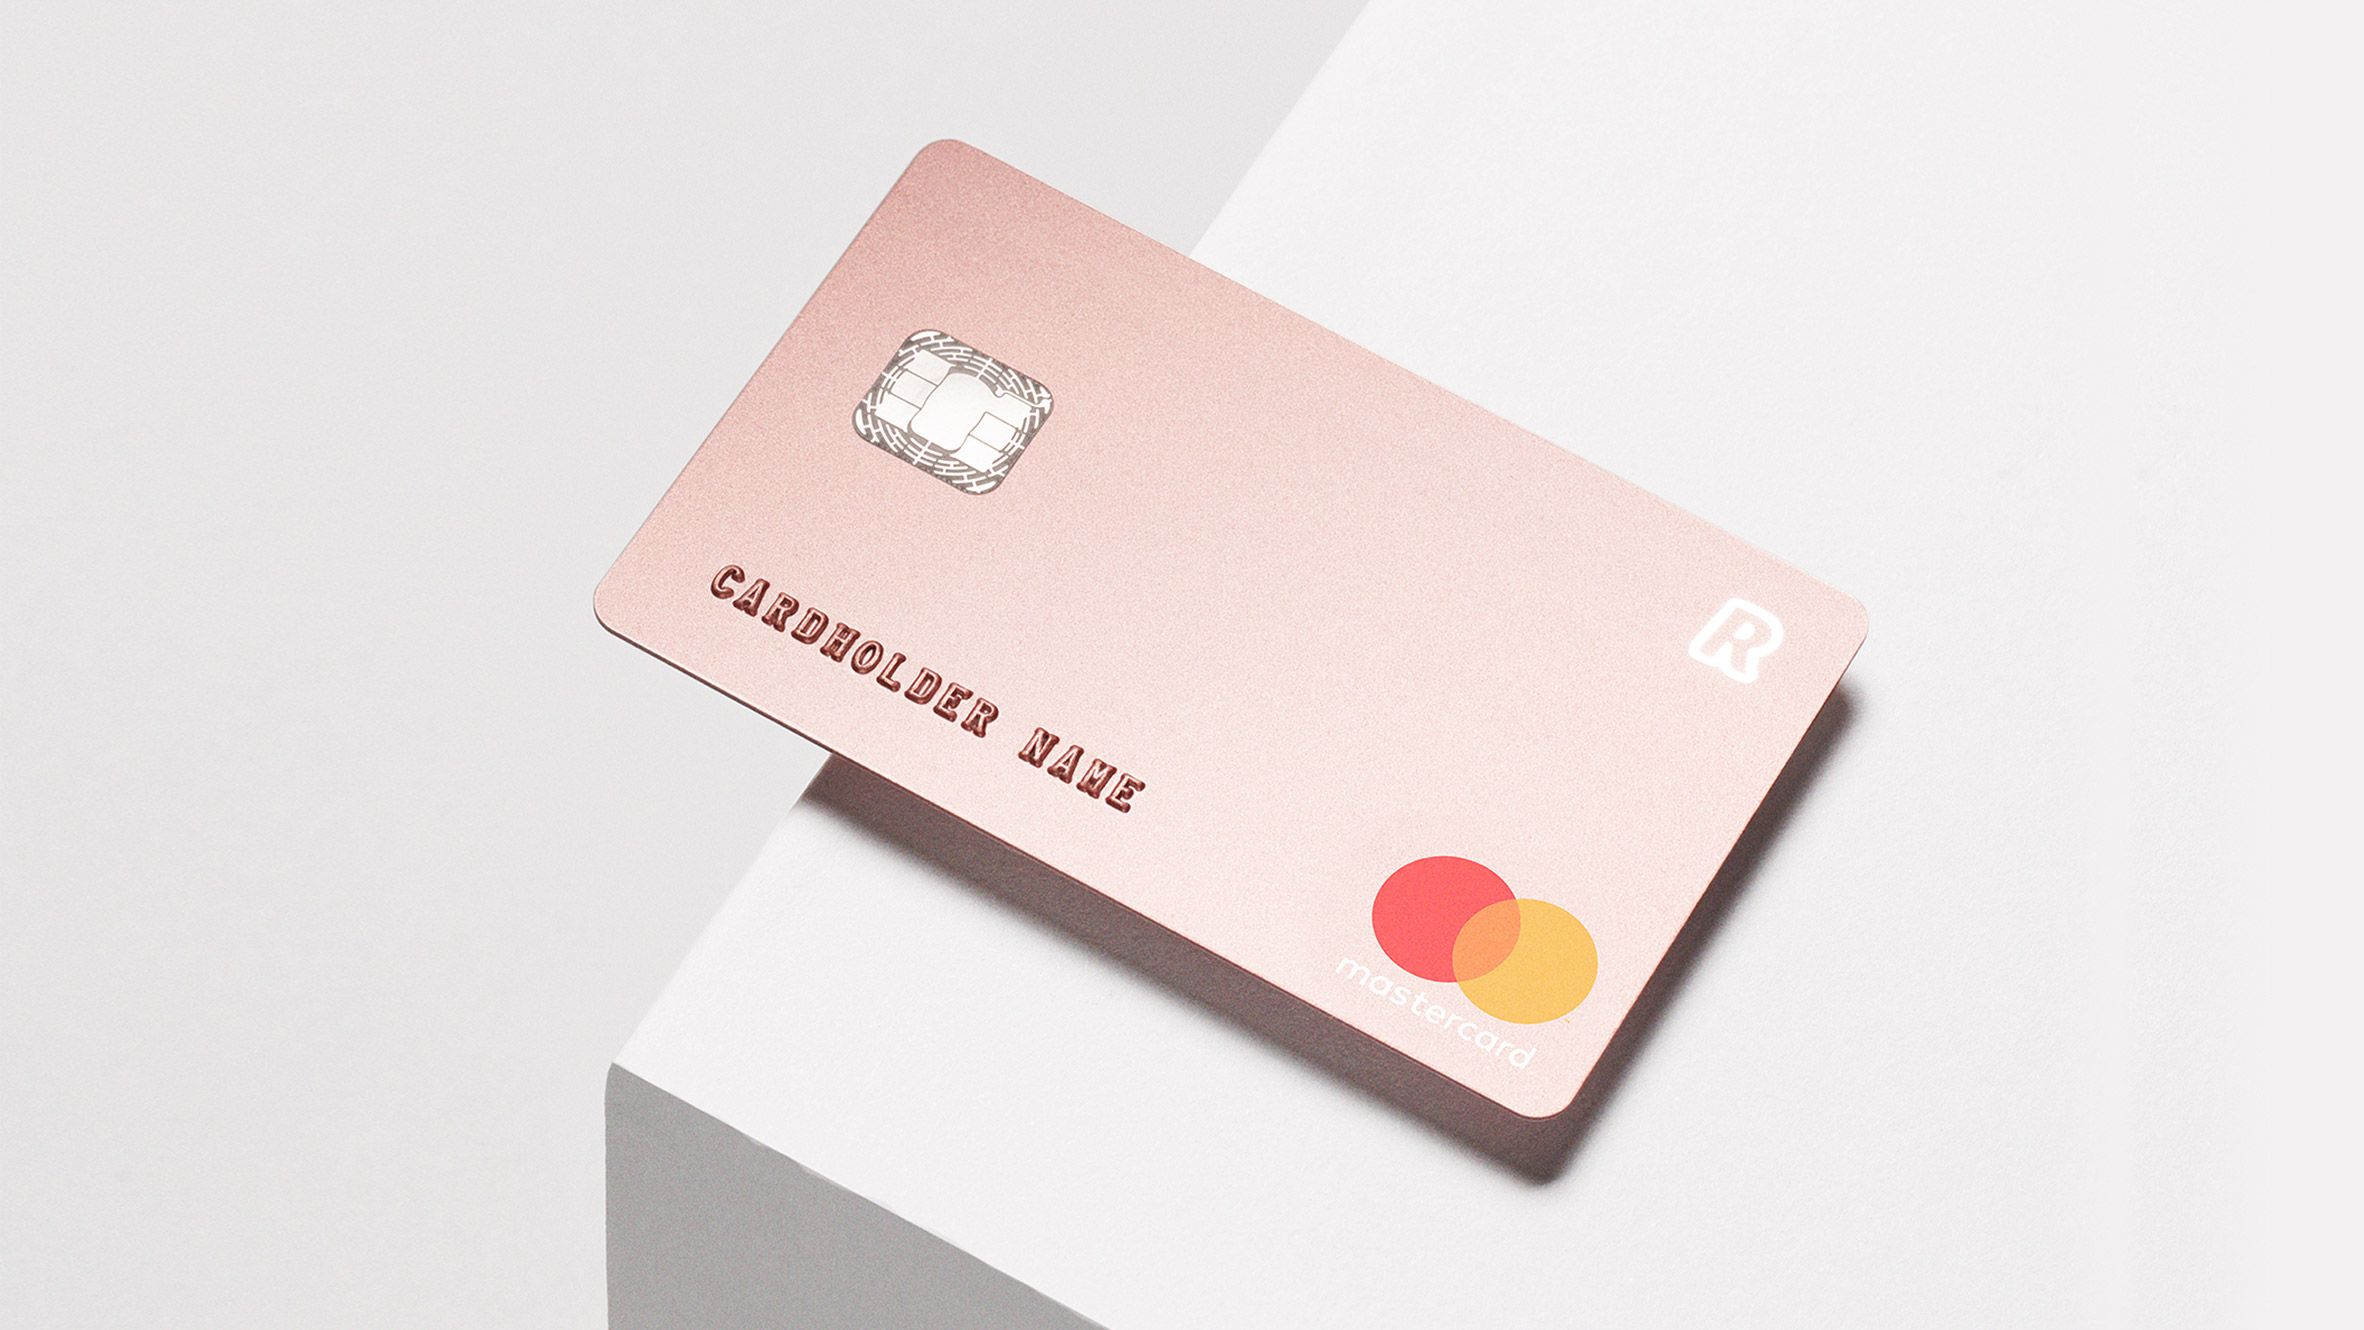 Blond Created A Bank Card That Forgoes Decoration And Embellishment In Favour Of A Minimal Look For Premium Customers Credit Card Design Card Design Bank Card